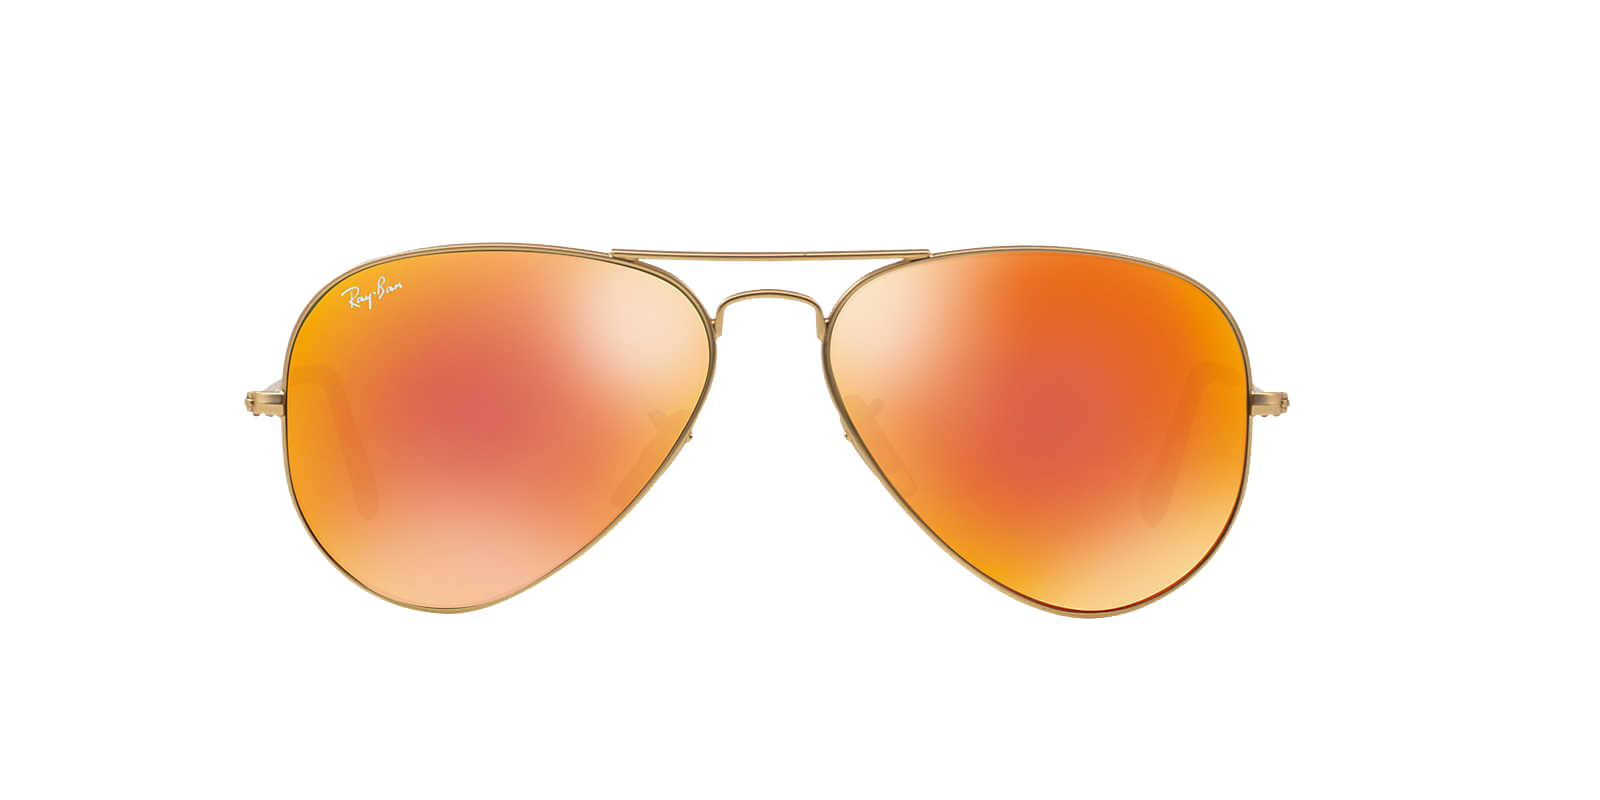 Png sunglasses. New goggles for cb